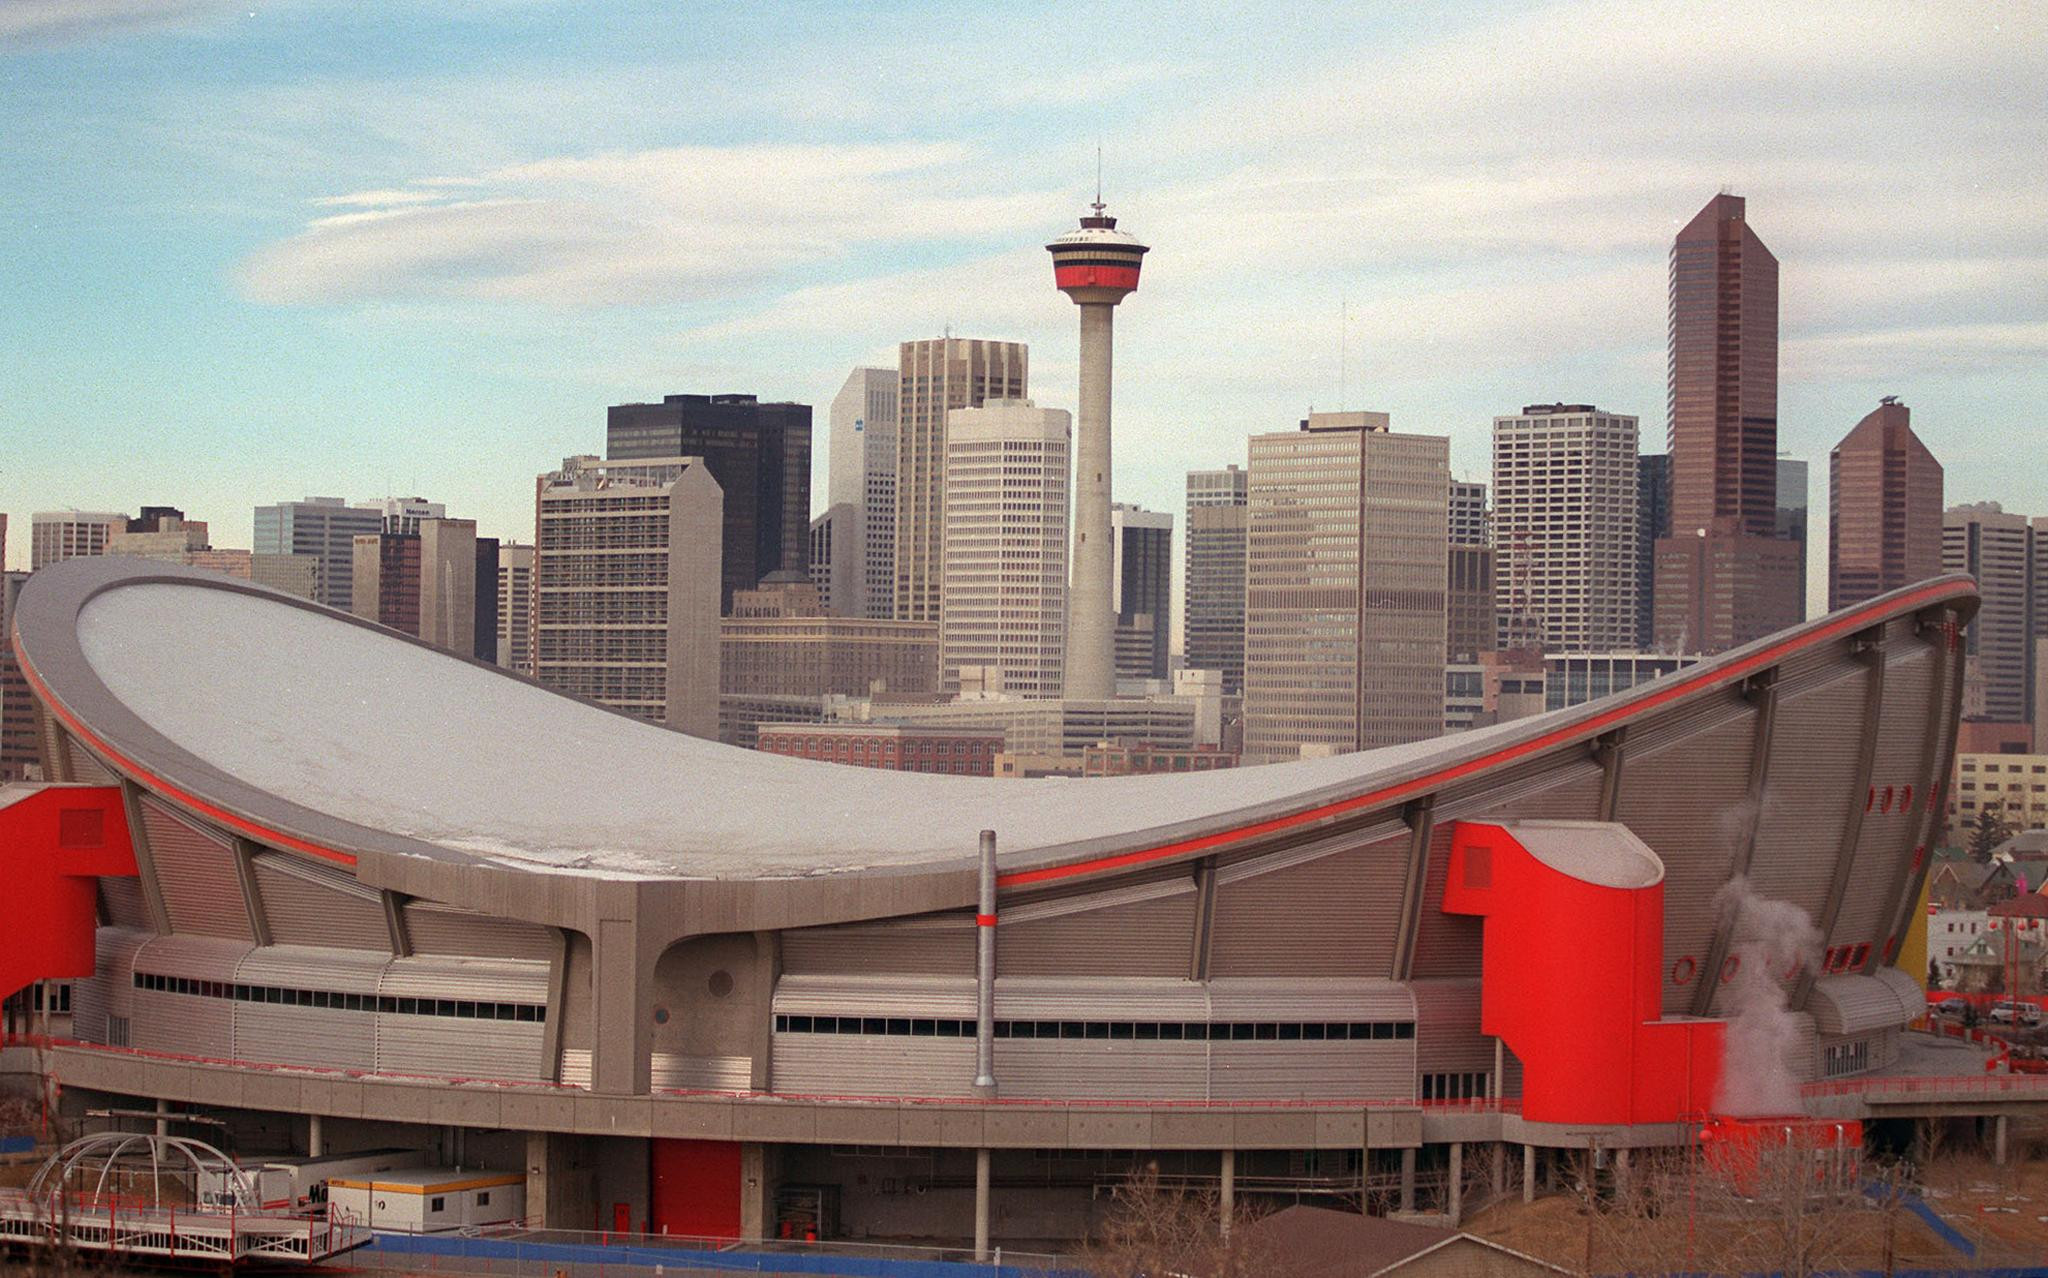 Calgary last hosted the Winter Olympic Games in 1988 ©Getty Images